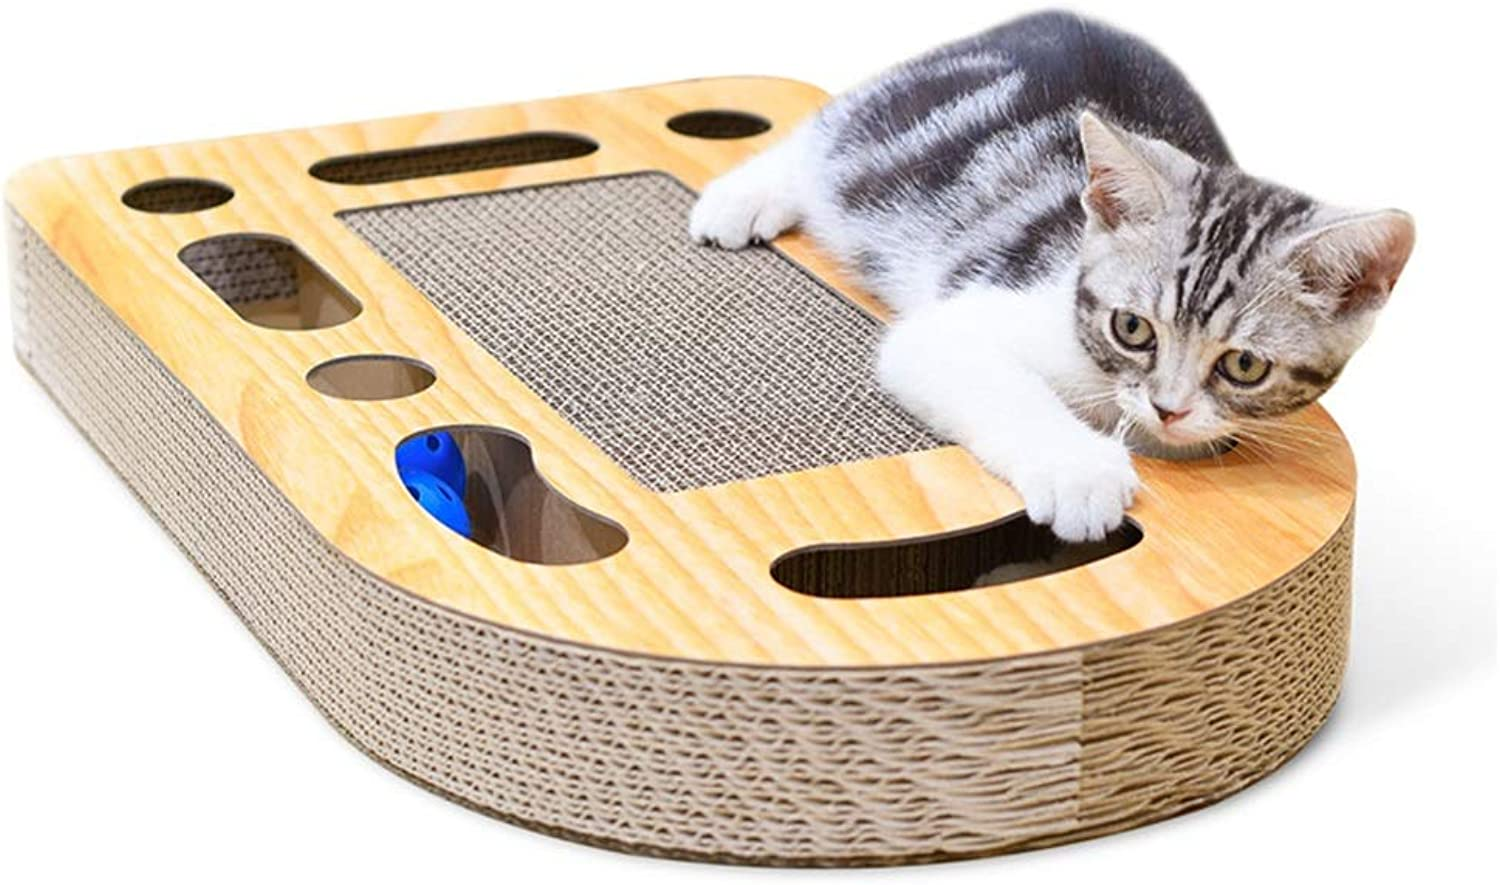 Corrugated Paper Cat Scratcher with Ball Scratch Board Claw Claw Toy Rest Bed Sofa Cutouts to Hide Toys Pet Paw Care Toy Infinity Lounge